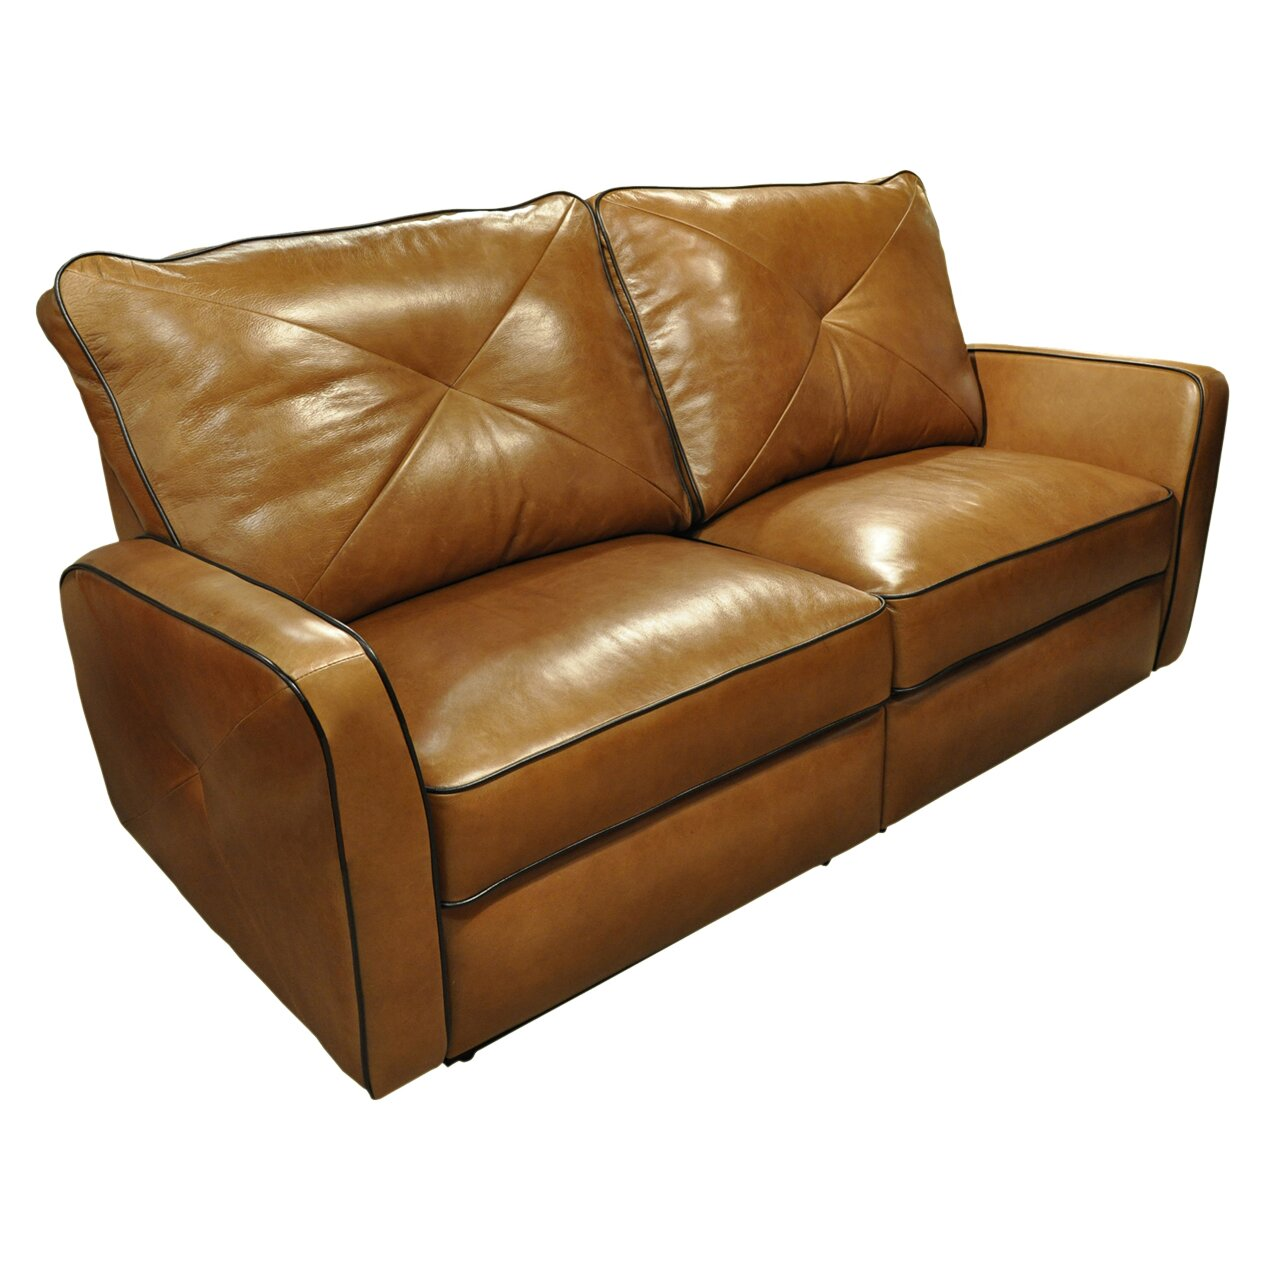 Omnia leather bahama leather reclining loveseat reviews wayfair Leather sofa and loveseat recliner